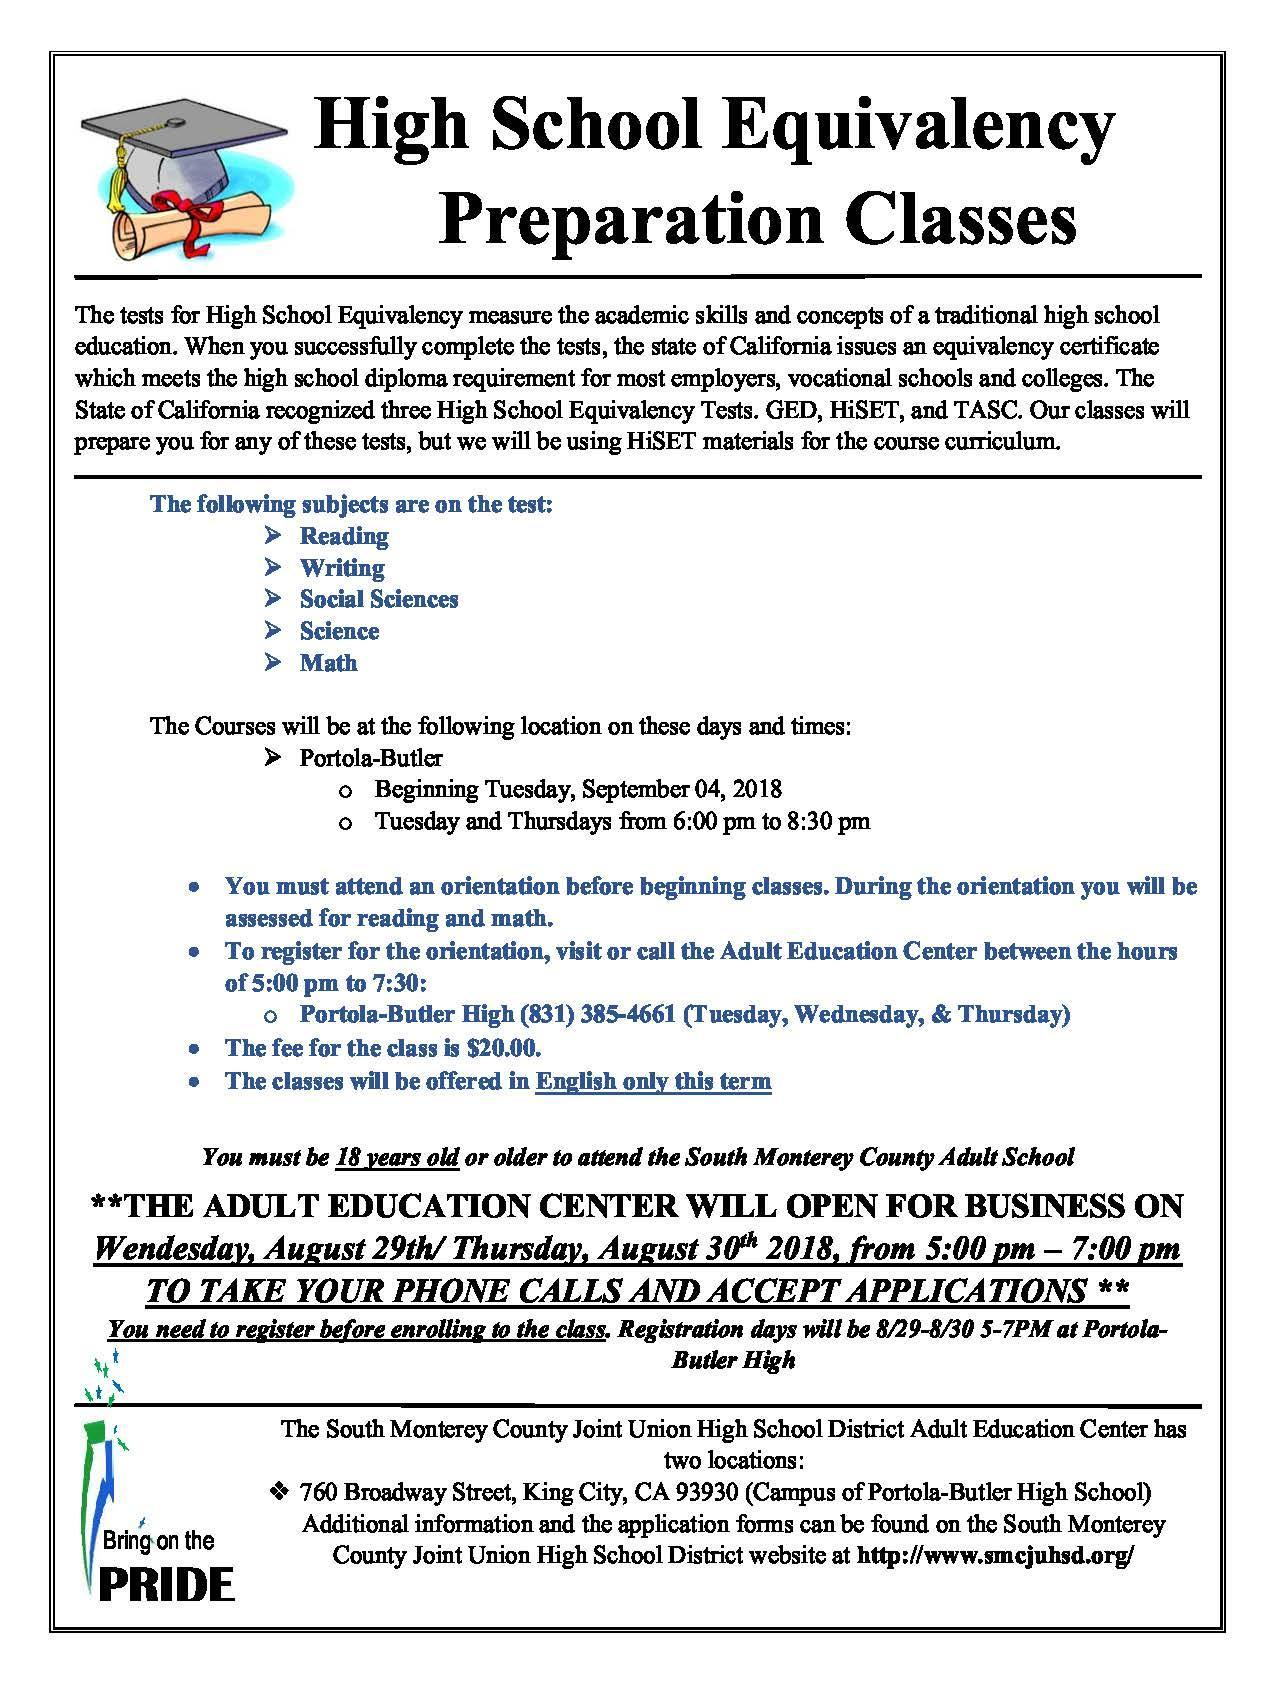 High School Equivalency Flyer